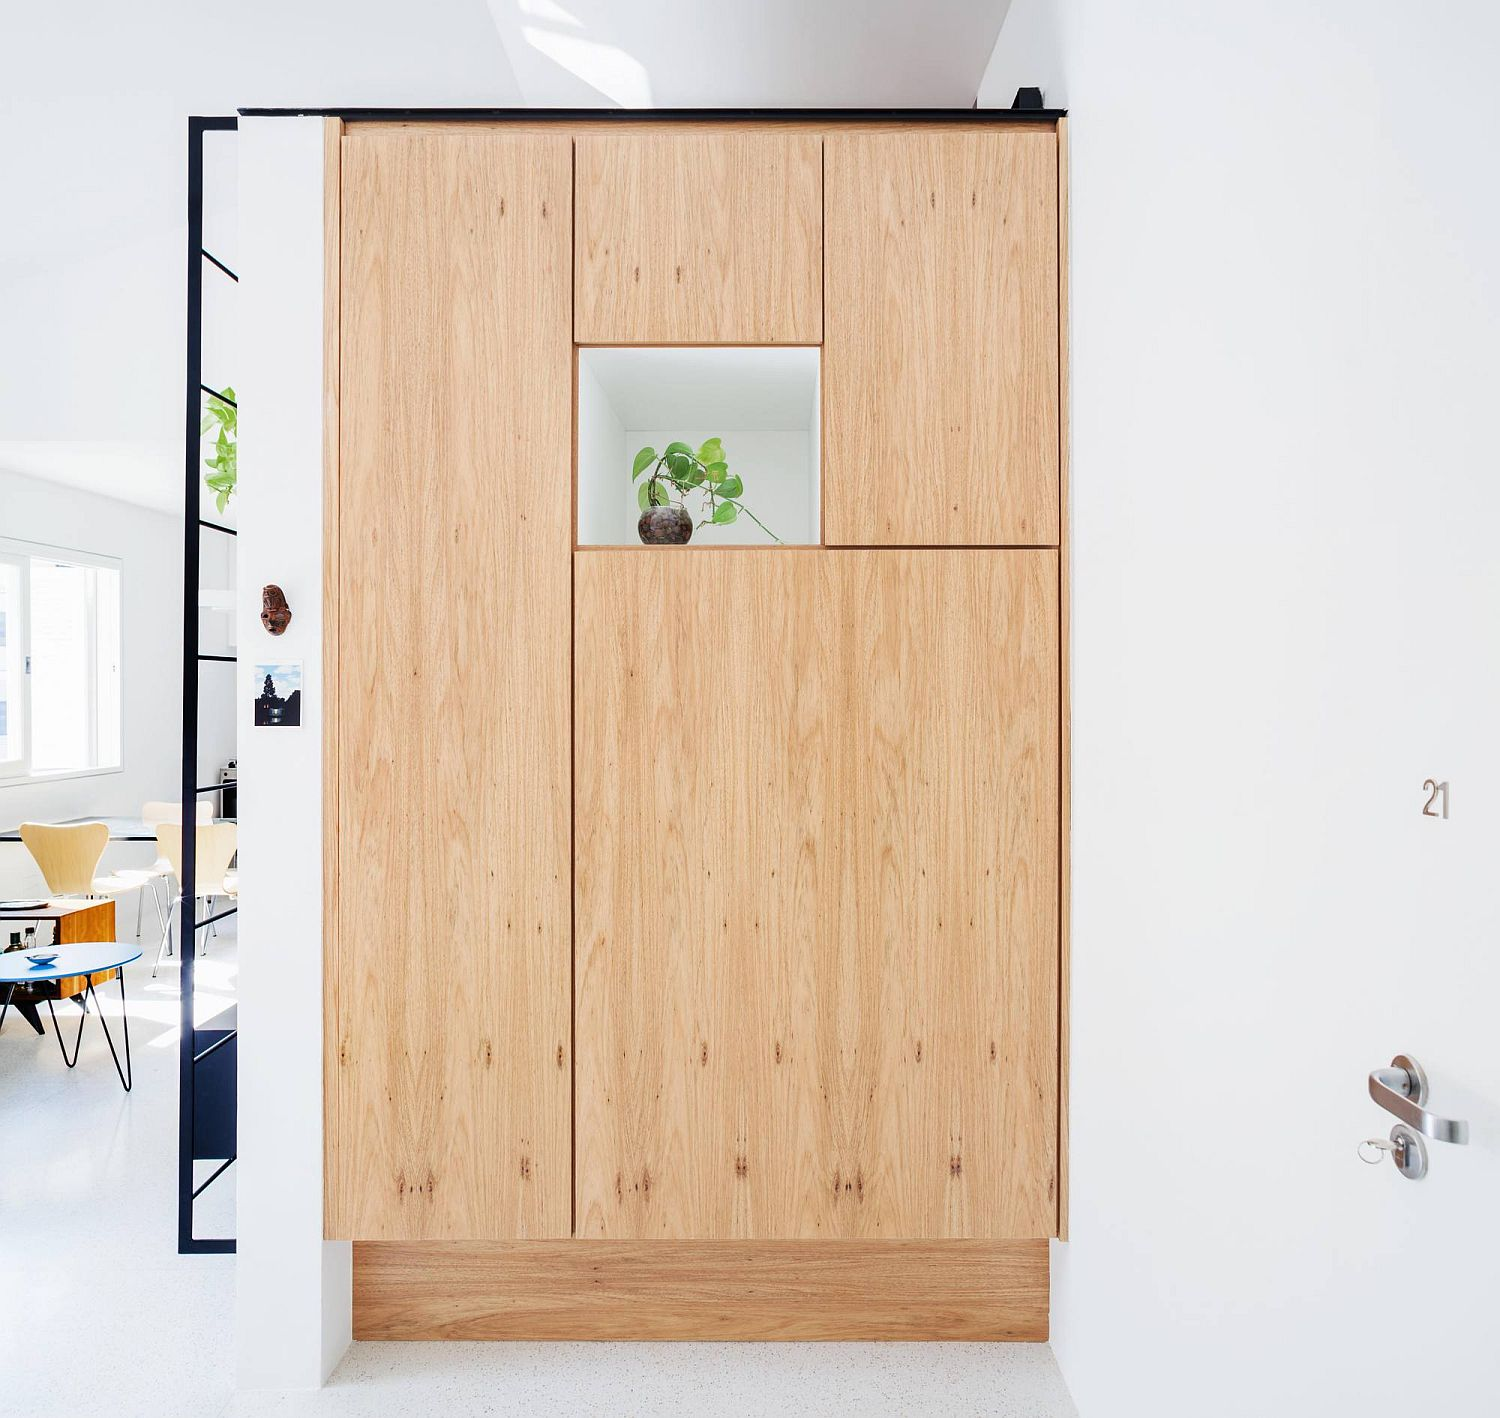 Giant wooden pantry that is neatly tucked behind wooden doors